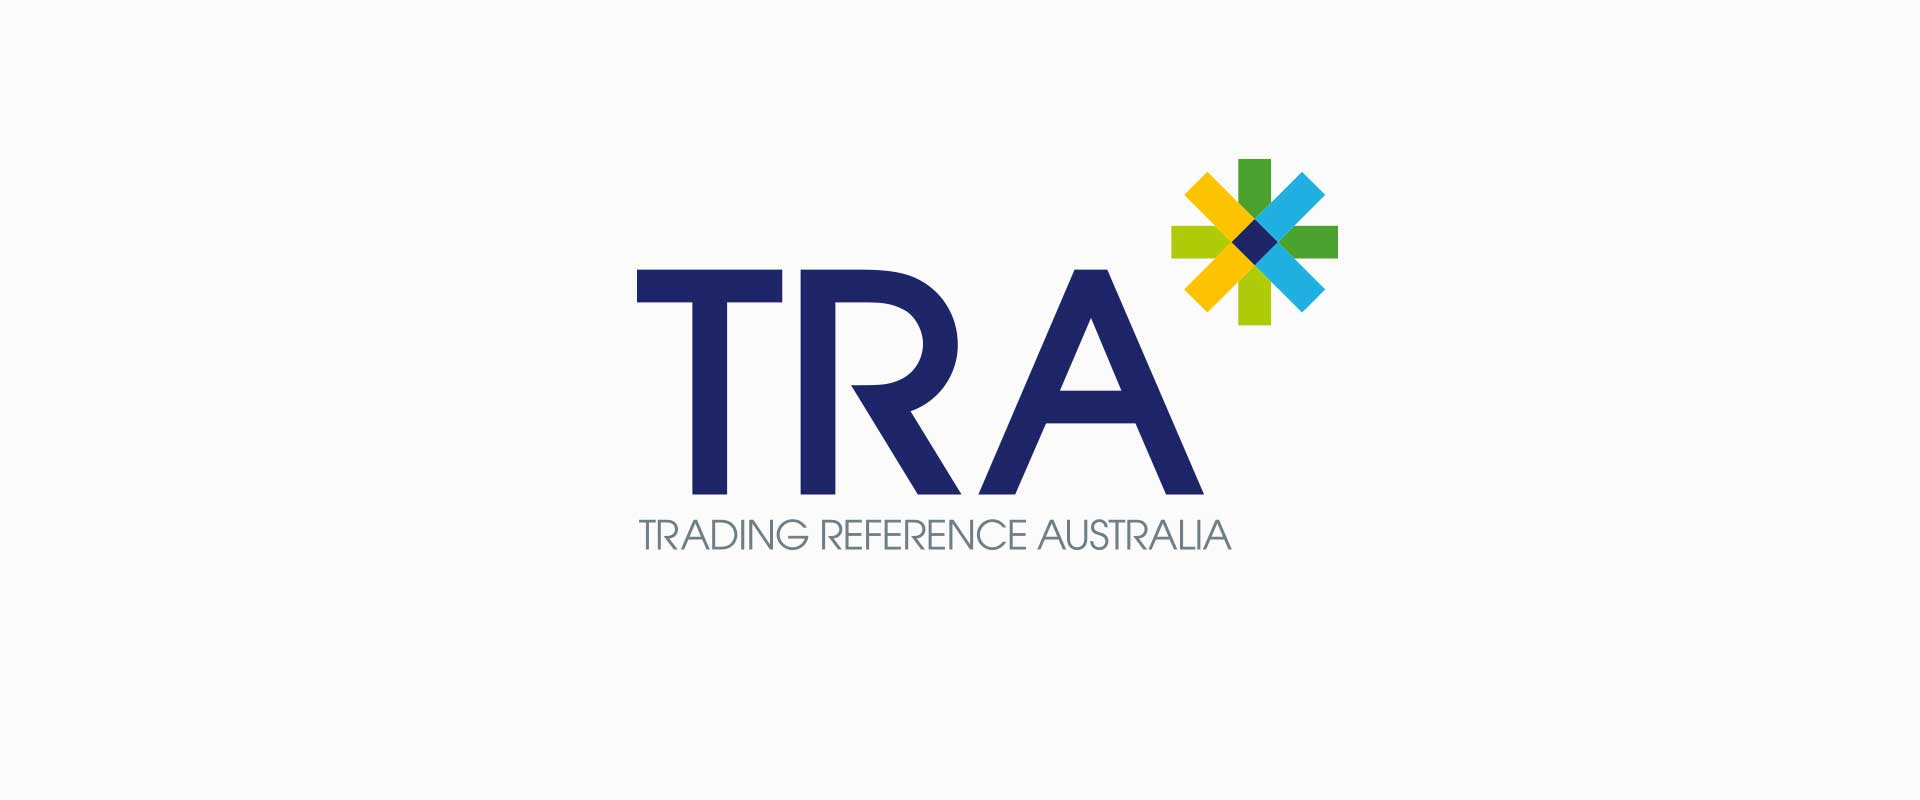 Incident: Top Australian tenancy blacklist firm under investigation by information commissioner | The Guardian - Australian Information Security Awareness and Advisory